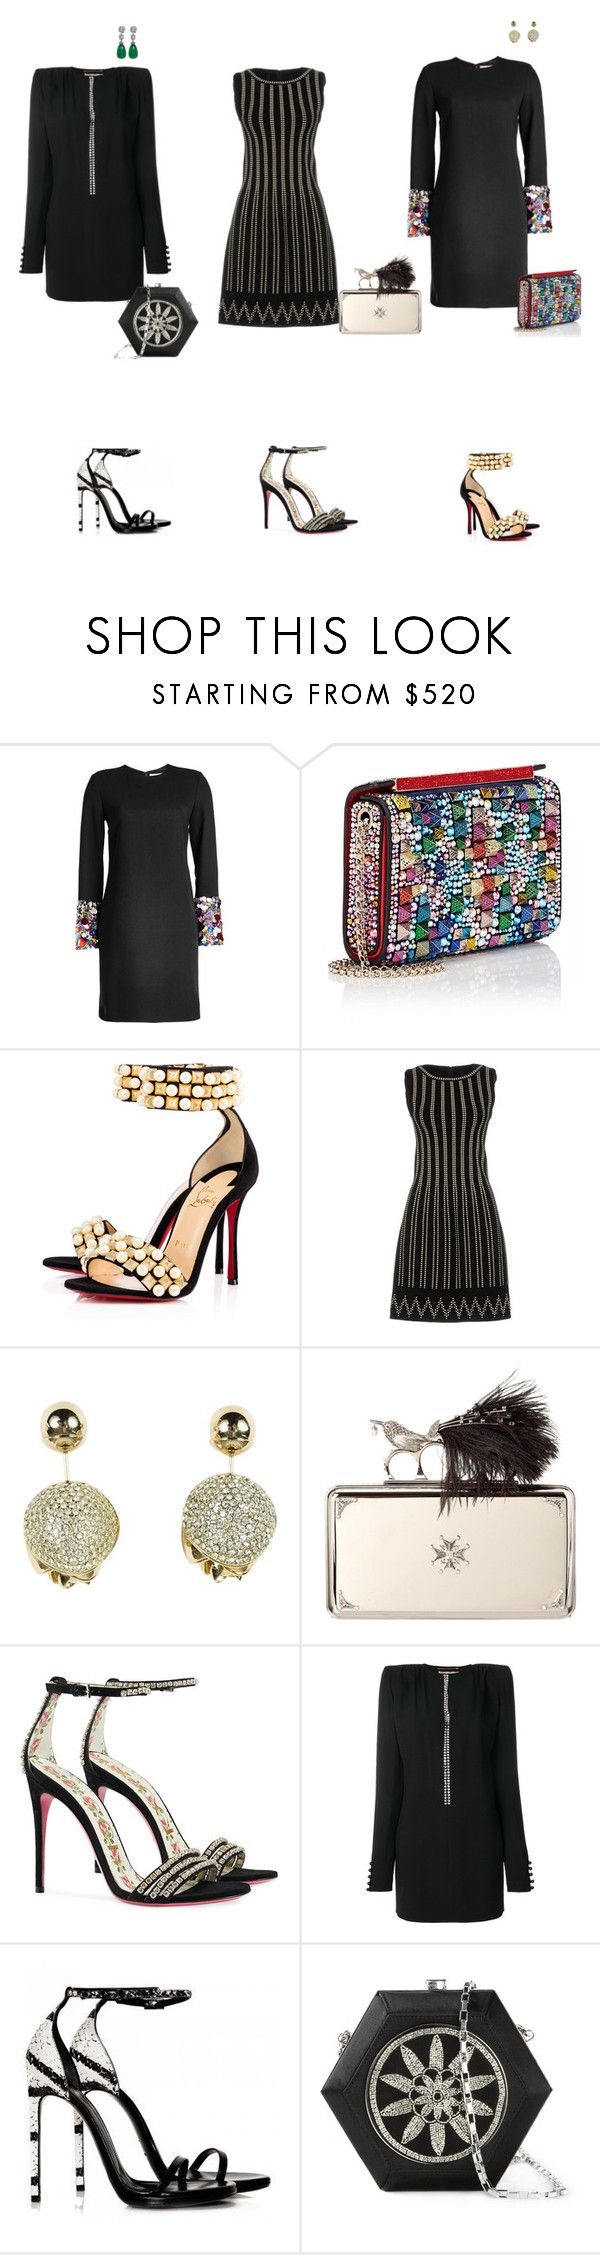 """""""Untitled #532"""" by jimle ❤ liked on Polyvore featuring Victoria, Victoria Beckham, Christian Louboutin, Alaïa, Christian Dior, Alexander McQueen, Gucci and Yves Saint Laurent"""